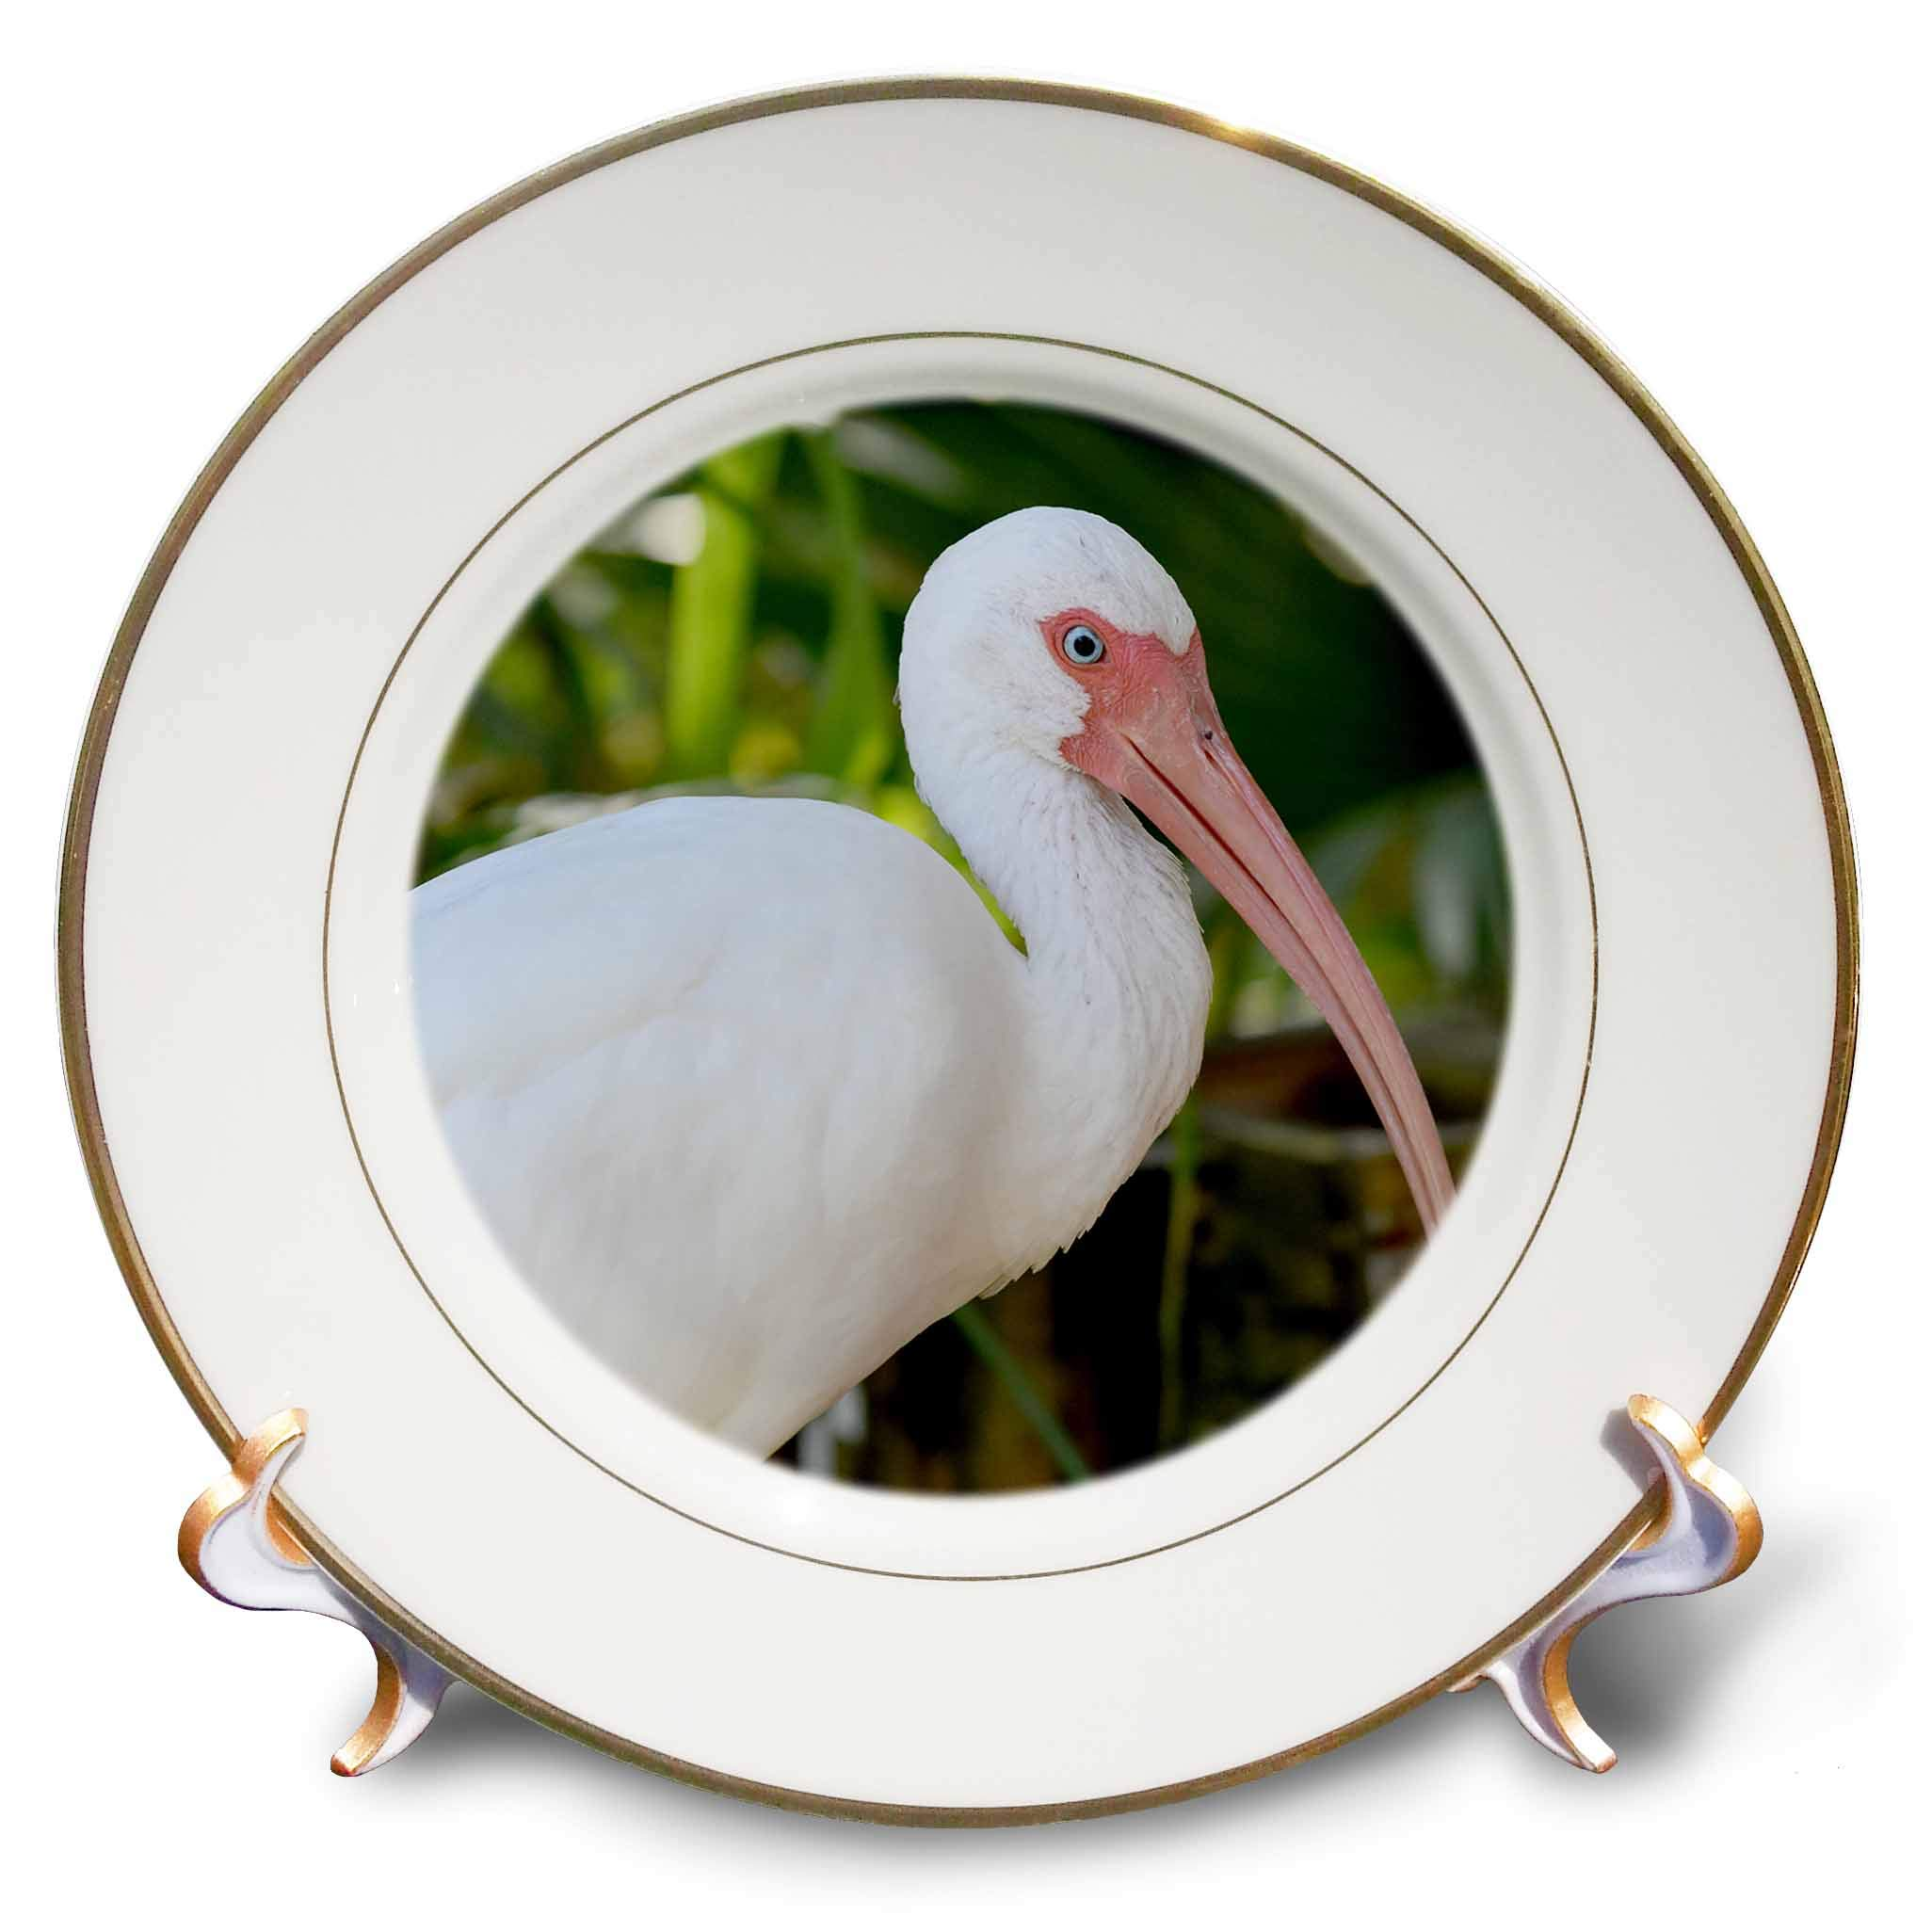 3dRose Susans Zoo Crew Animal - Ibis Bird Looking Right - 8 inch Porcelain Plate (cp_294898_1)